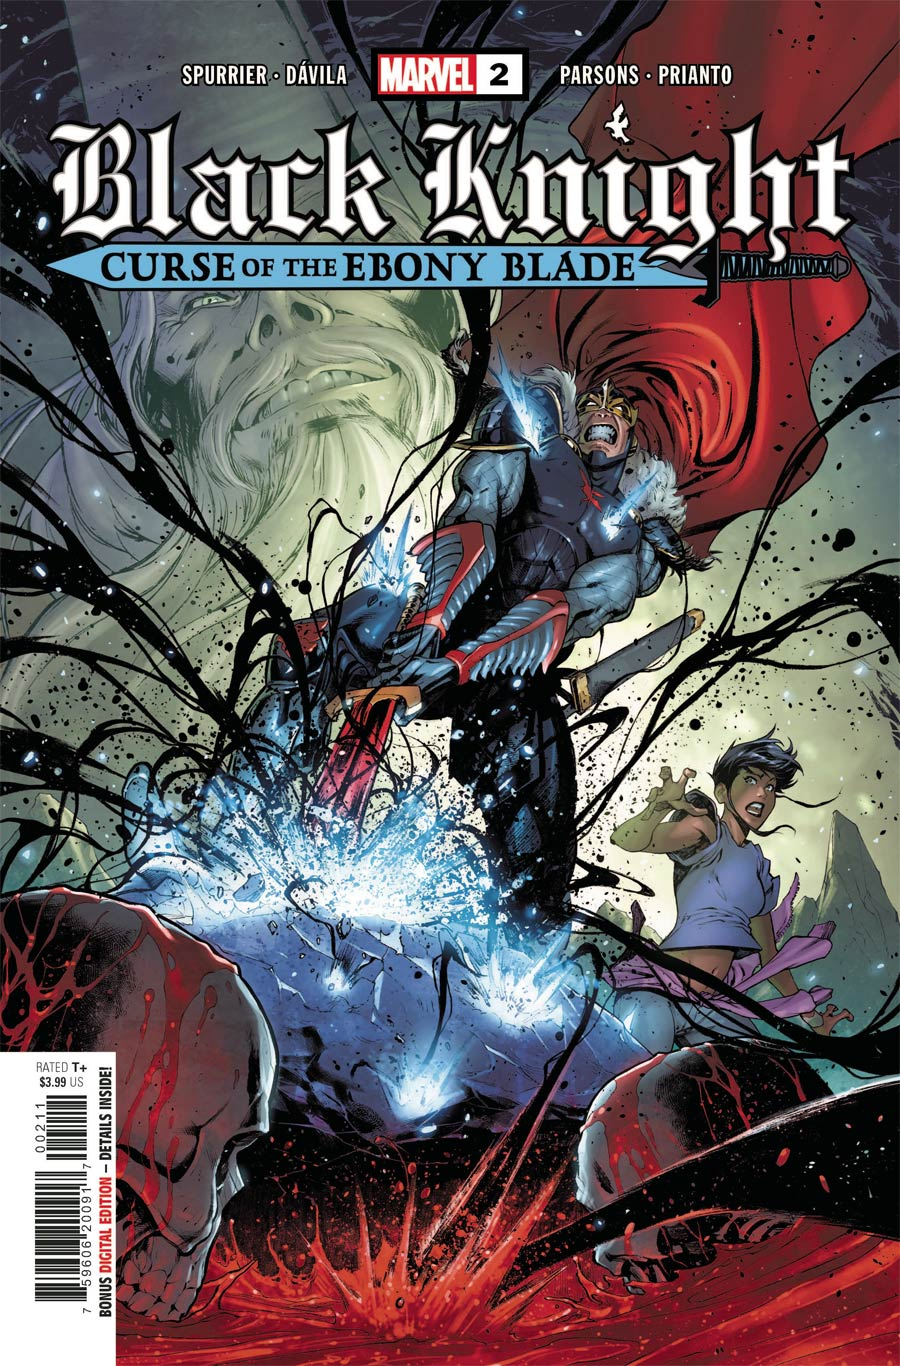 Black Knight Curse Of The Ebony Blade #2 Cover A Regular Iban Coello Cover